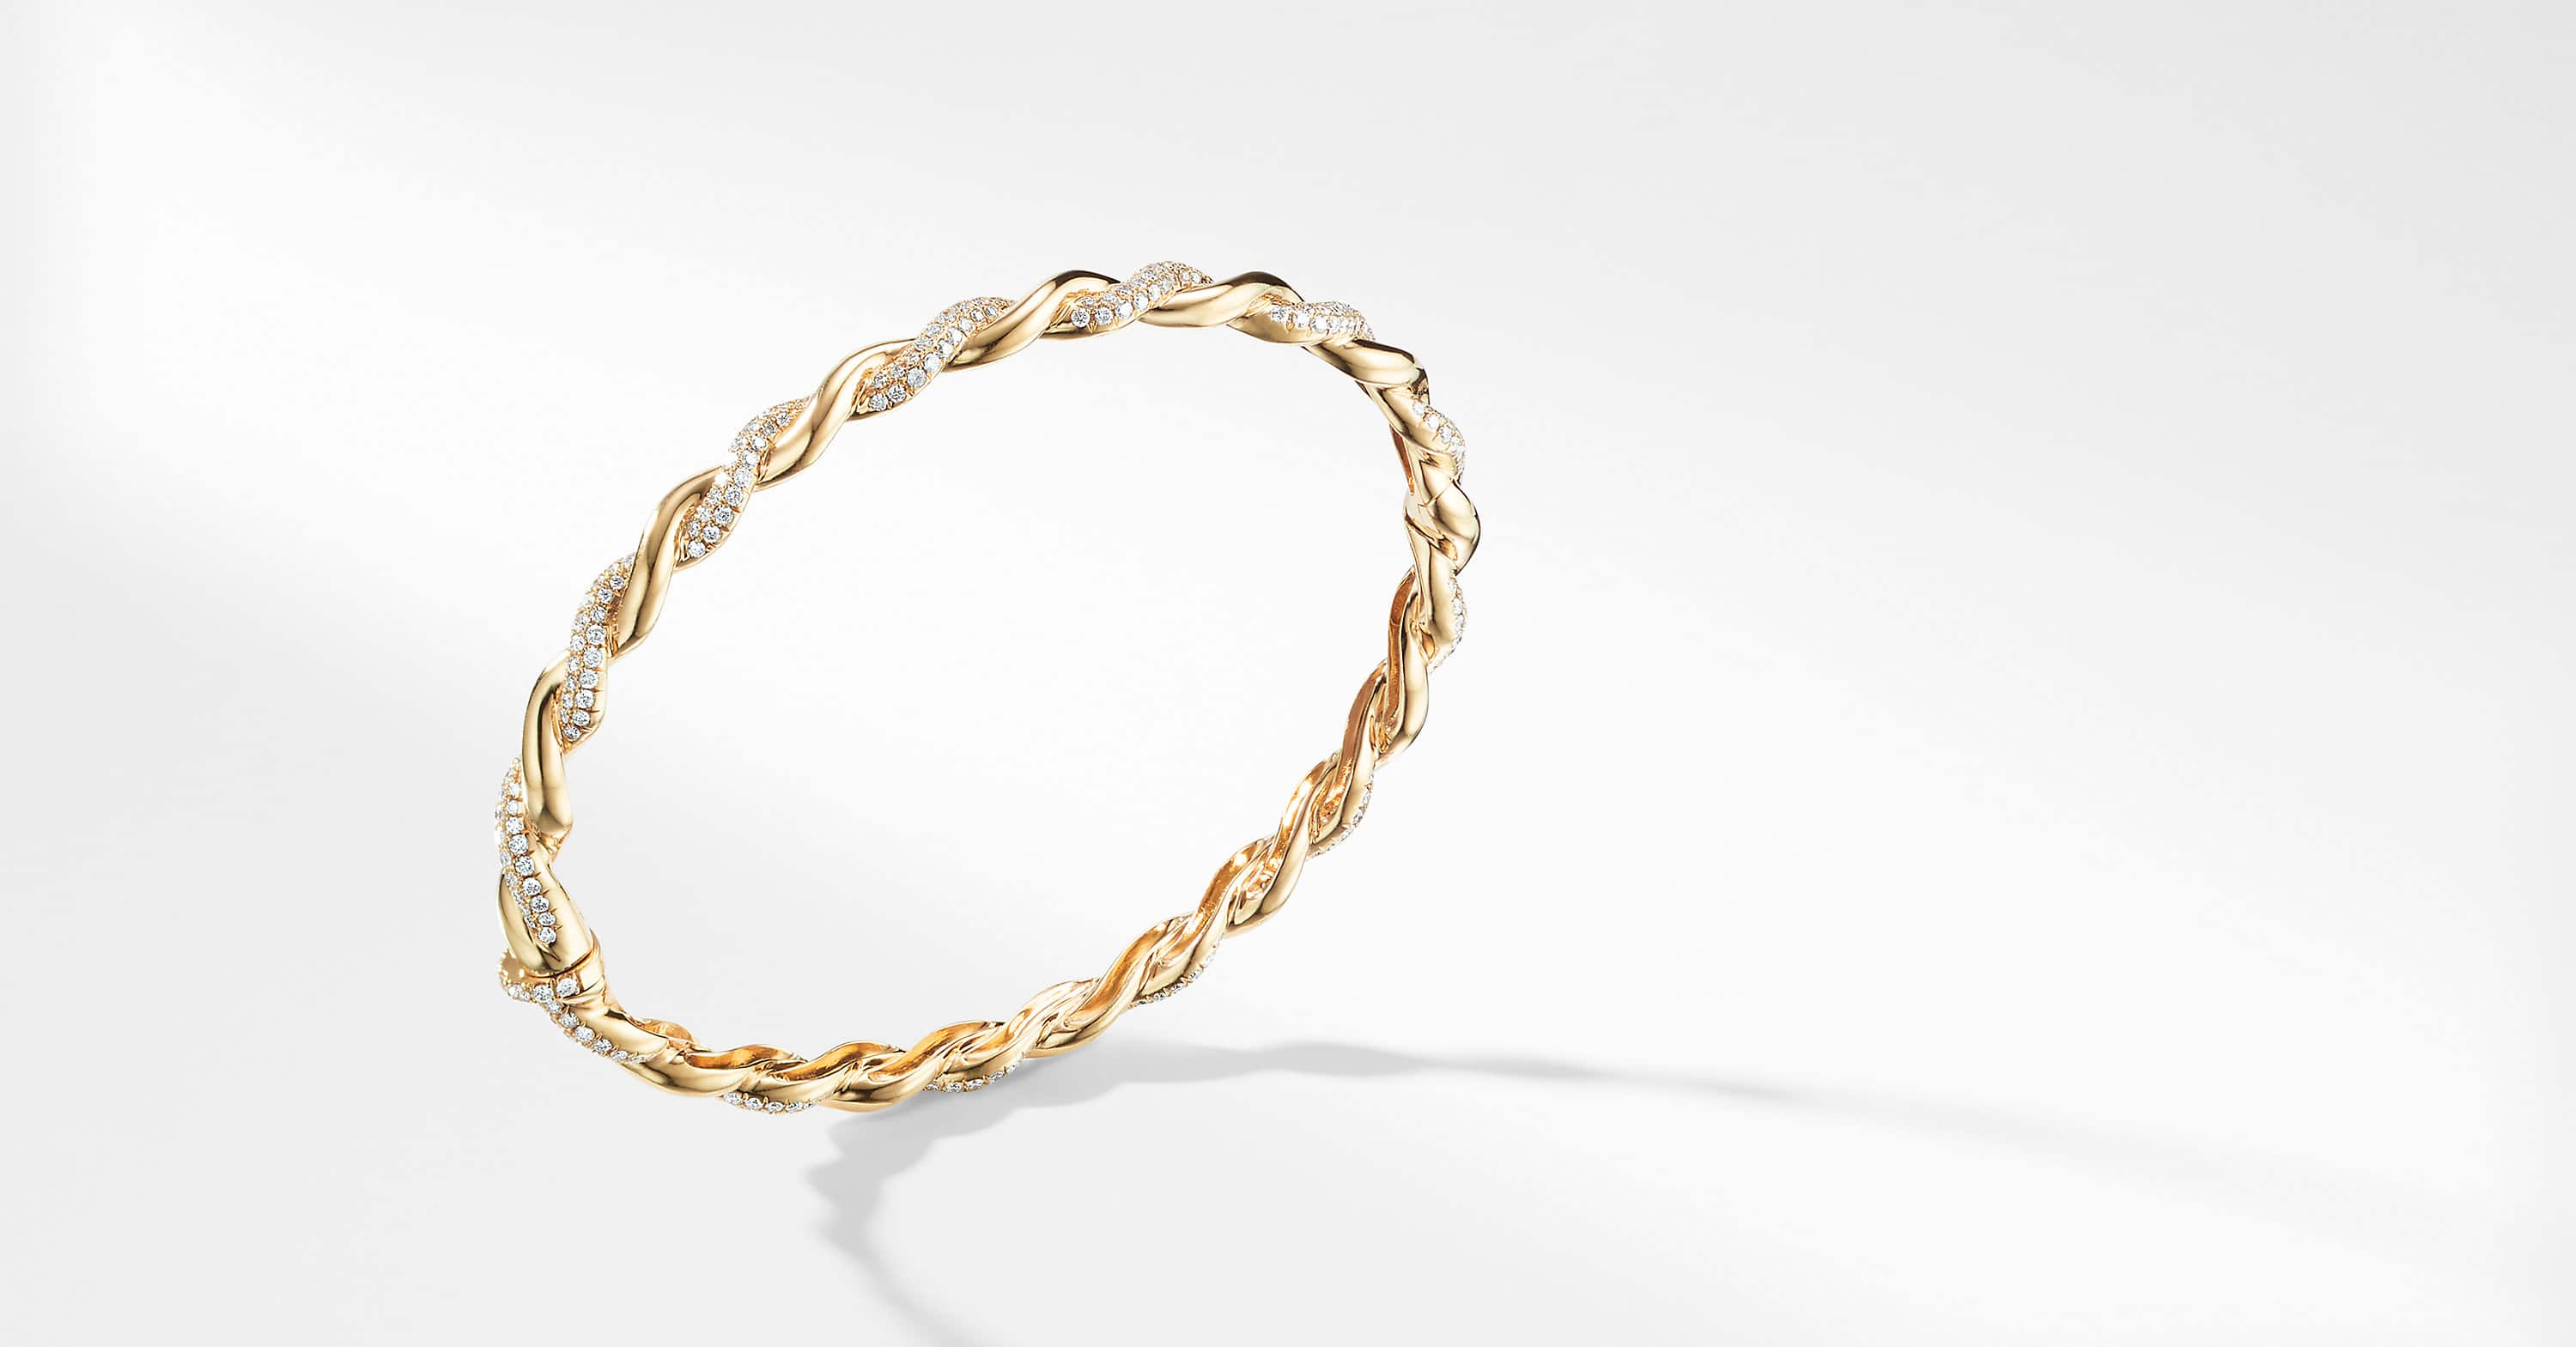 Wisteria Bracelet with Diamonds in 18K Gold, 5mm